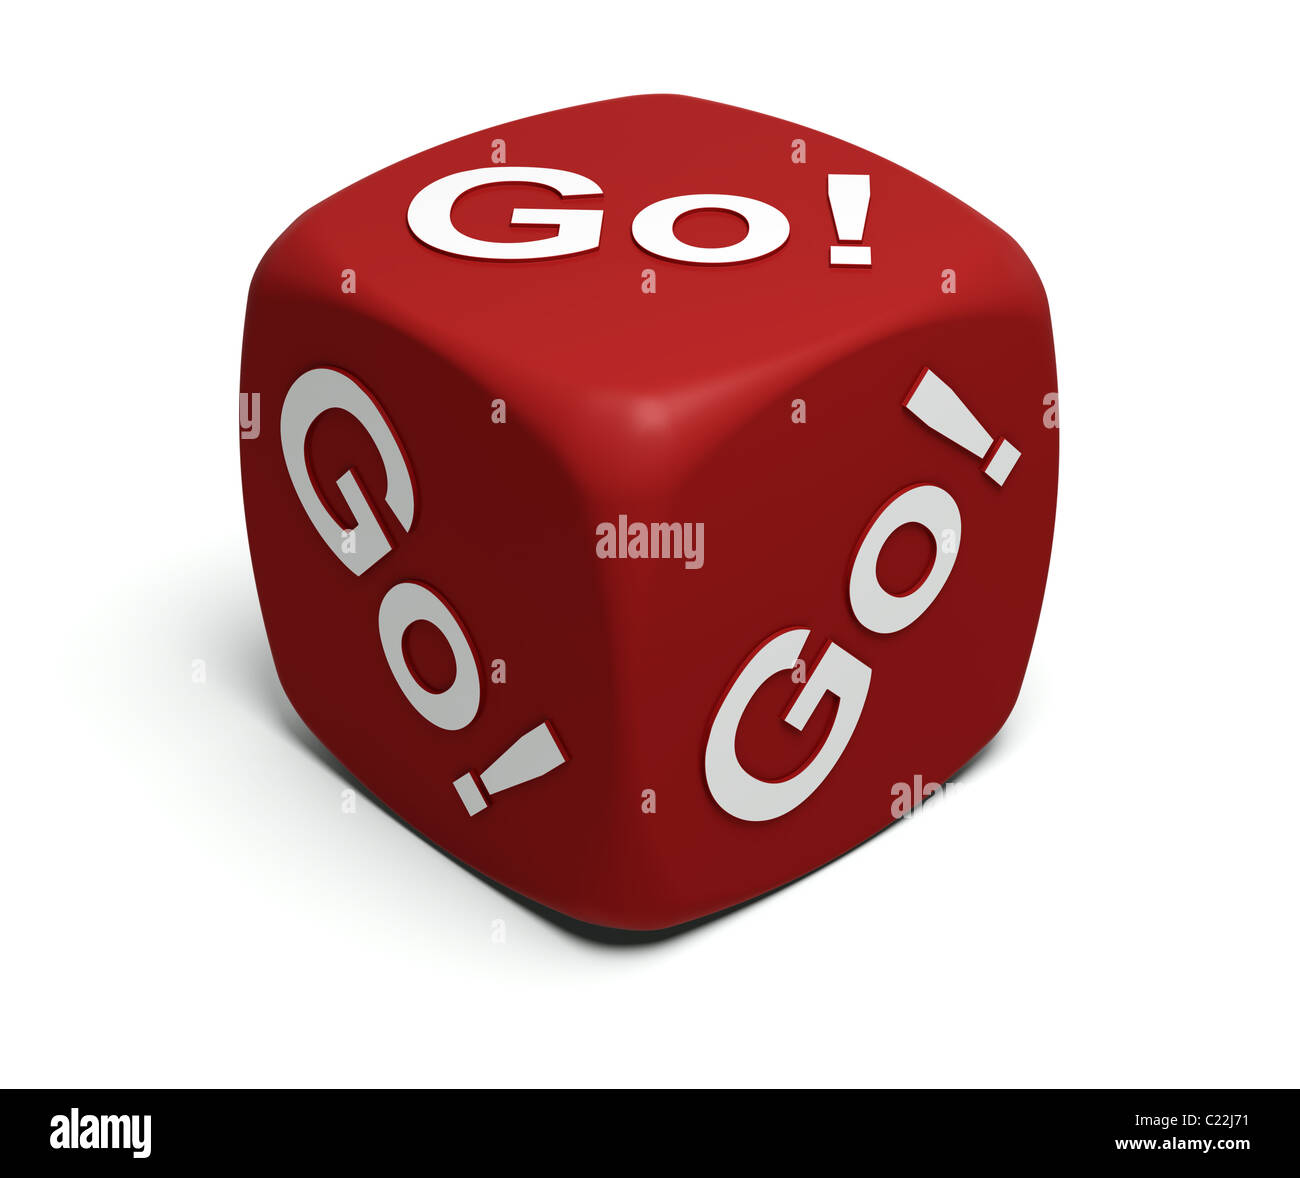 Red Dice with exclamation Go! Go! Go! on faces - Stock Image